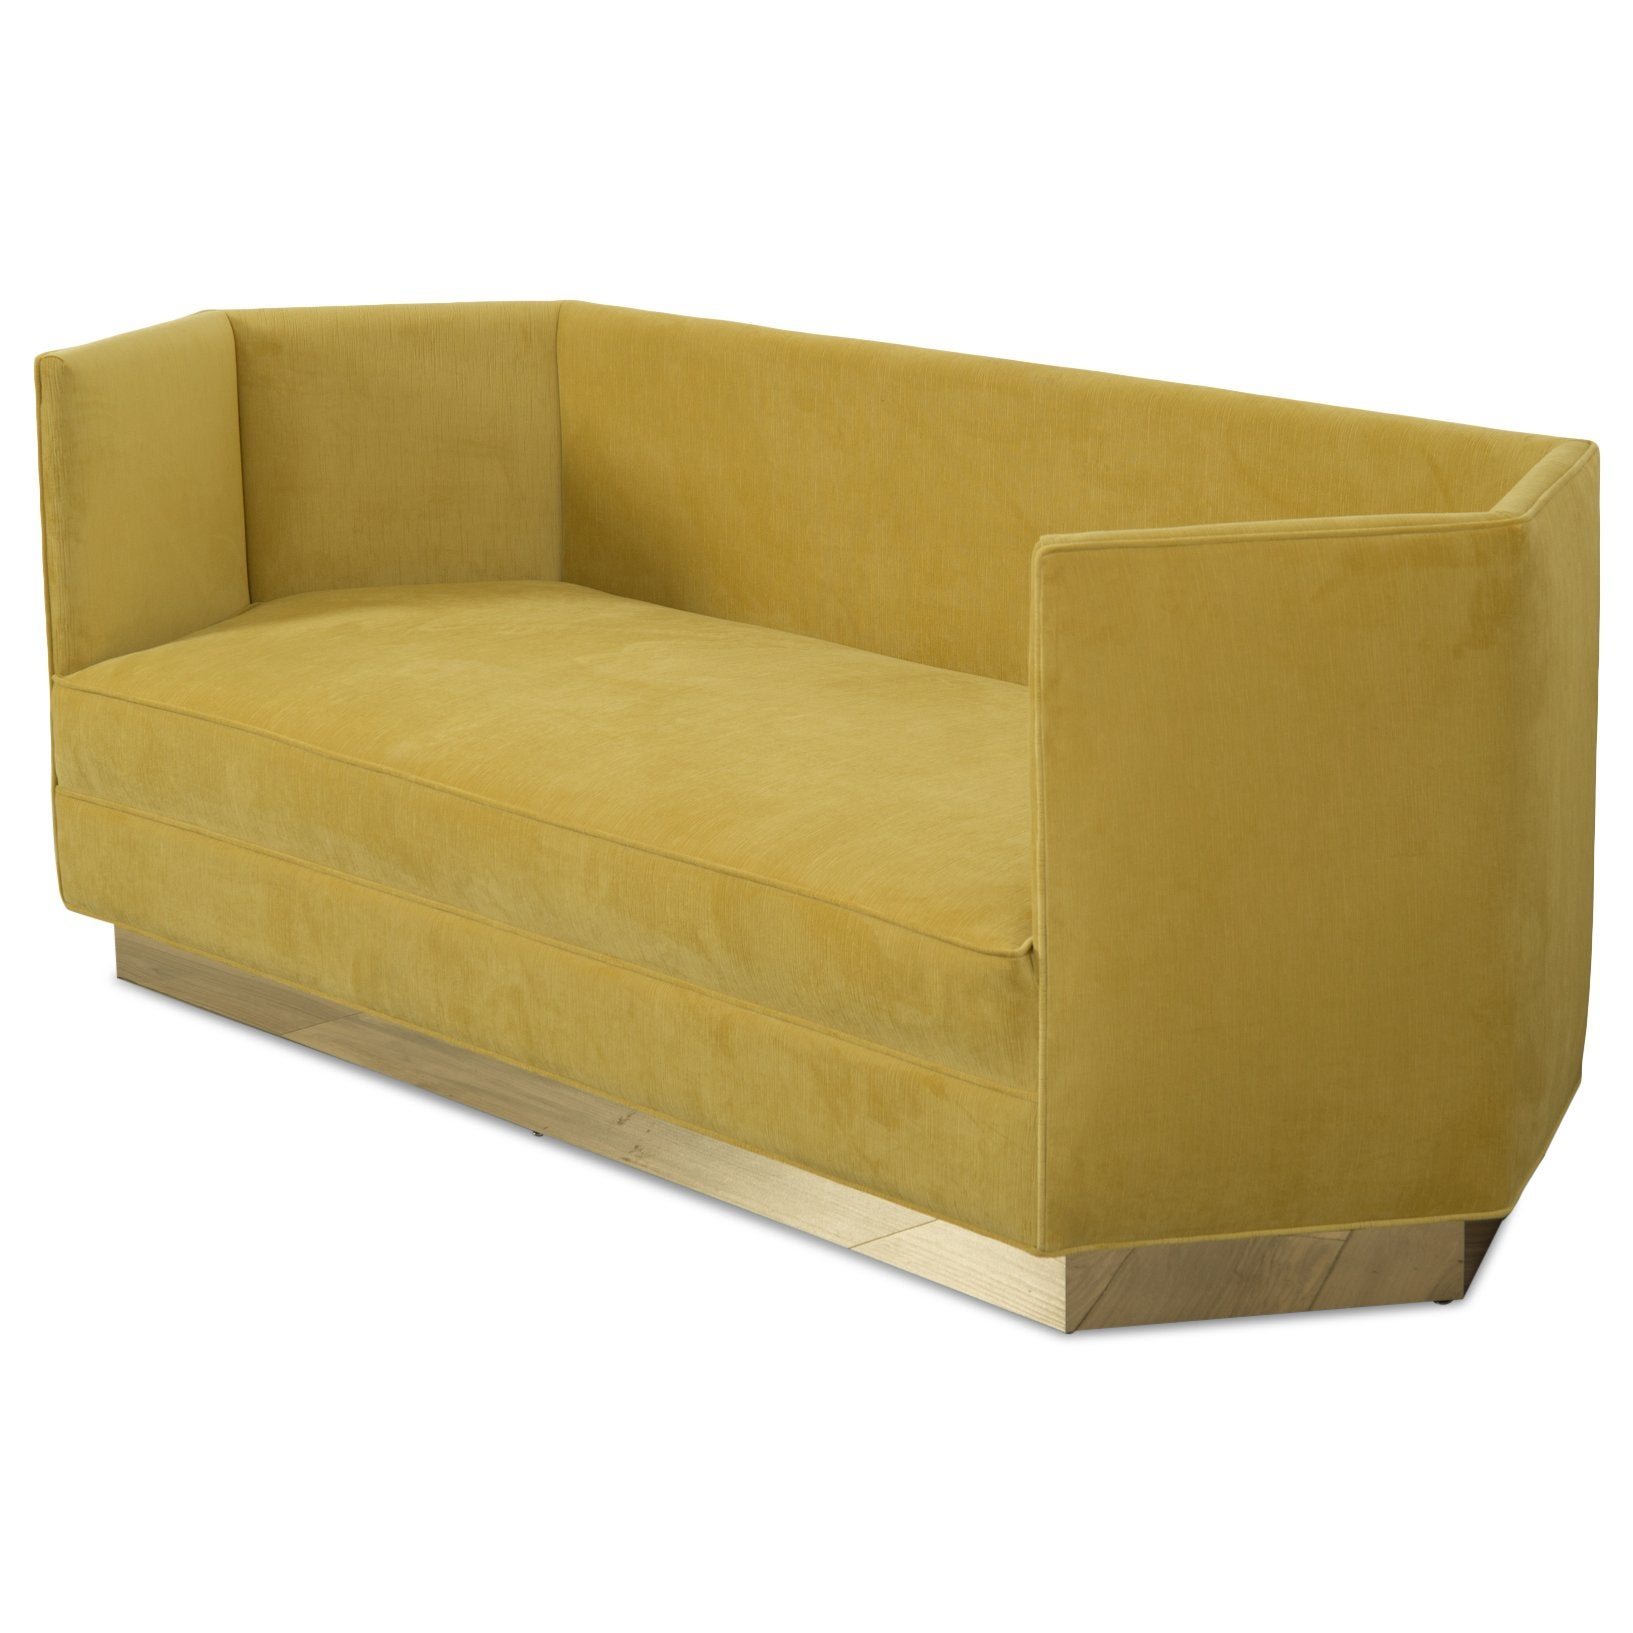 Modern Hexagon Sofa in Venice Marigold Velvet and Polished Brass Veneer Toe Kick